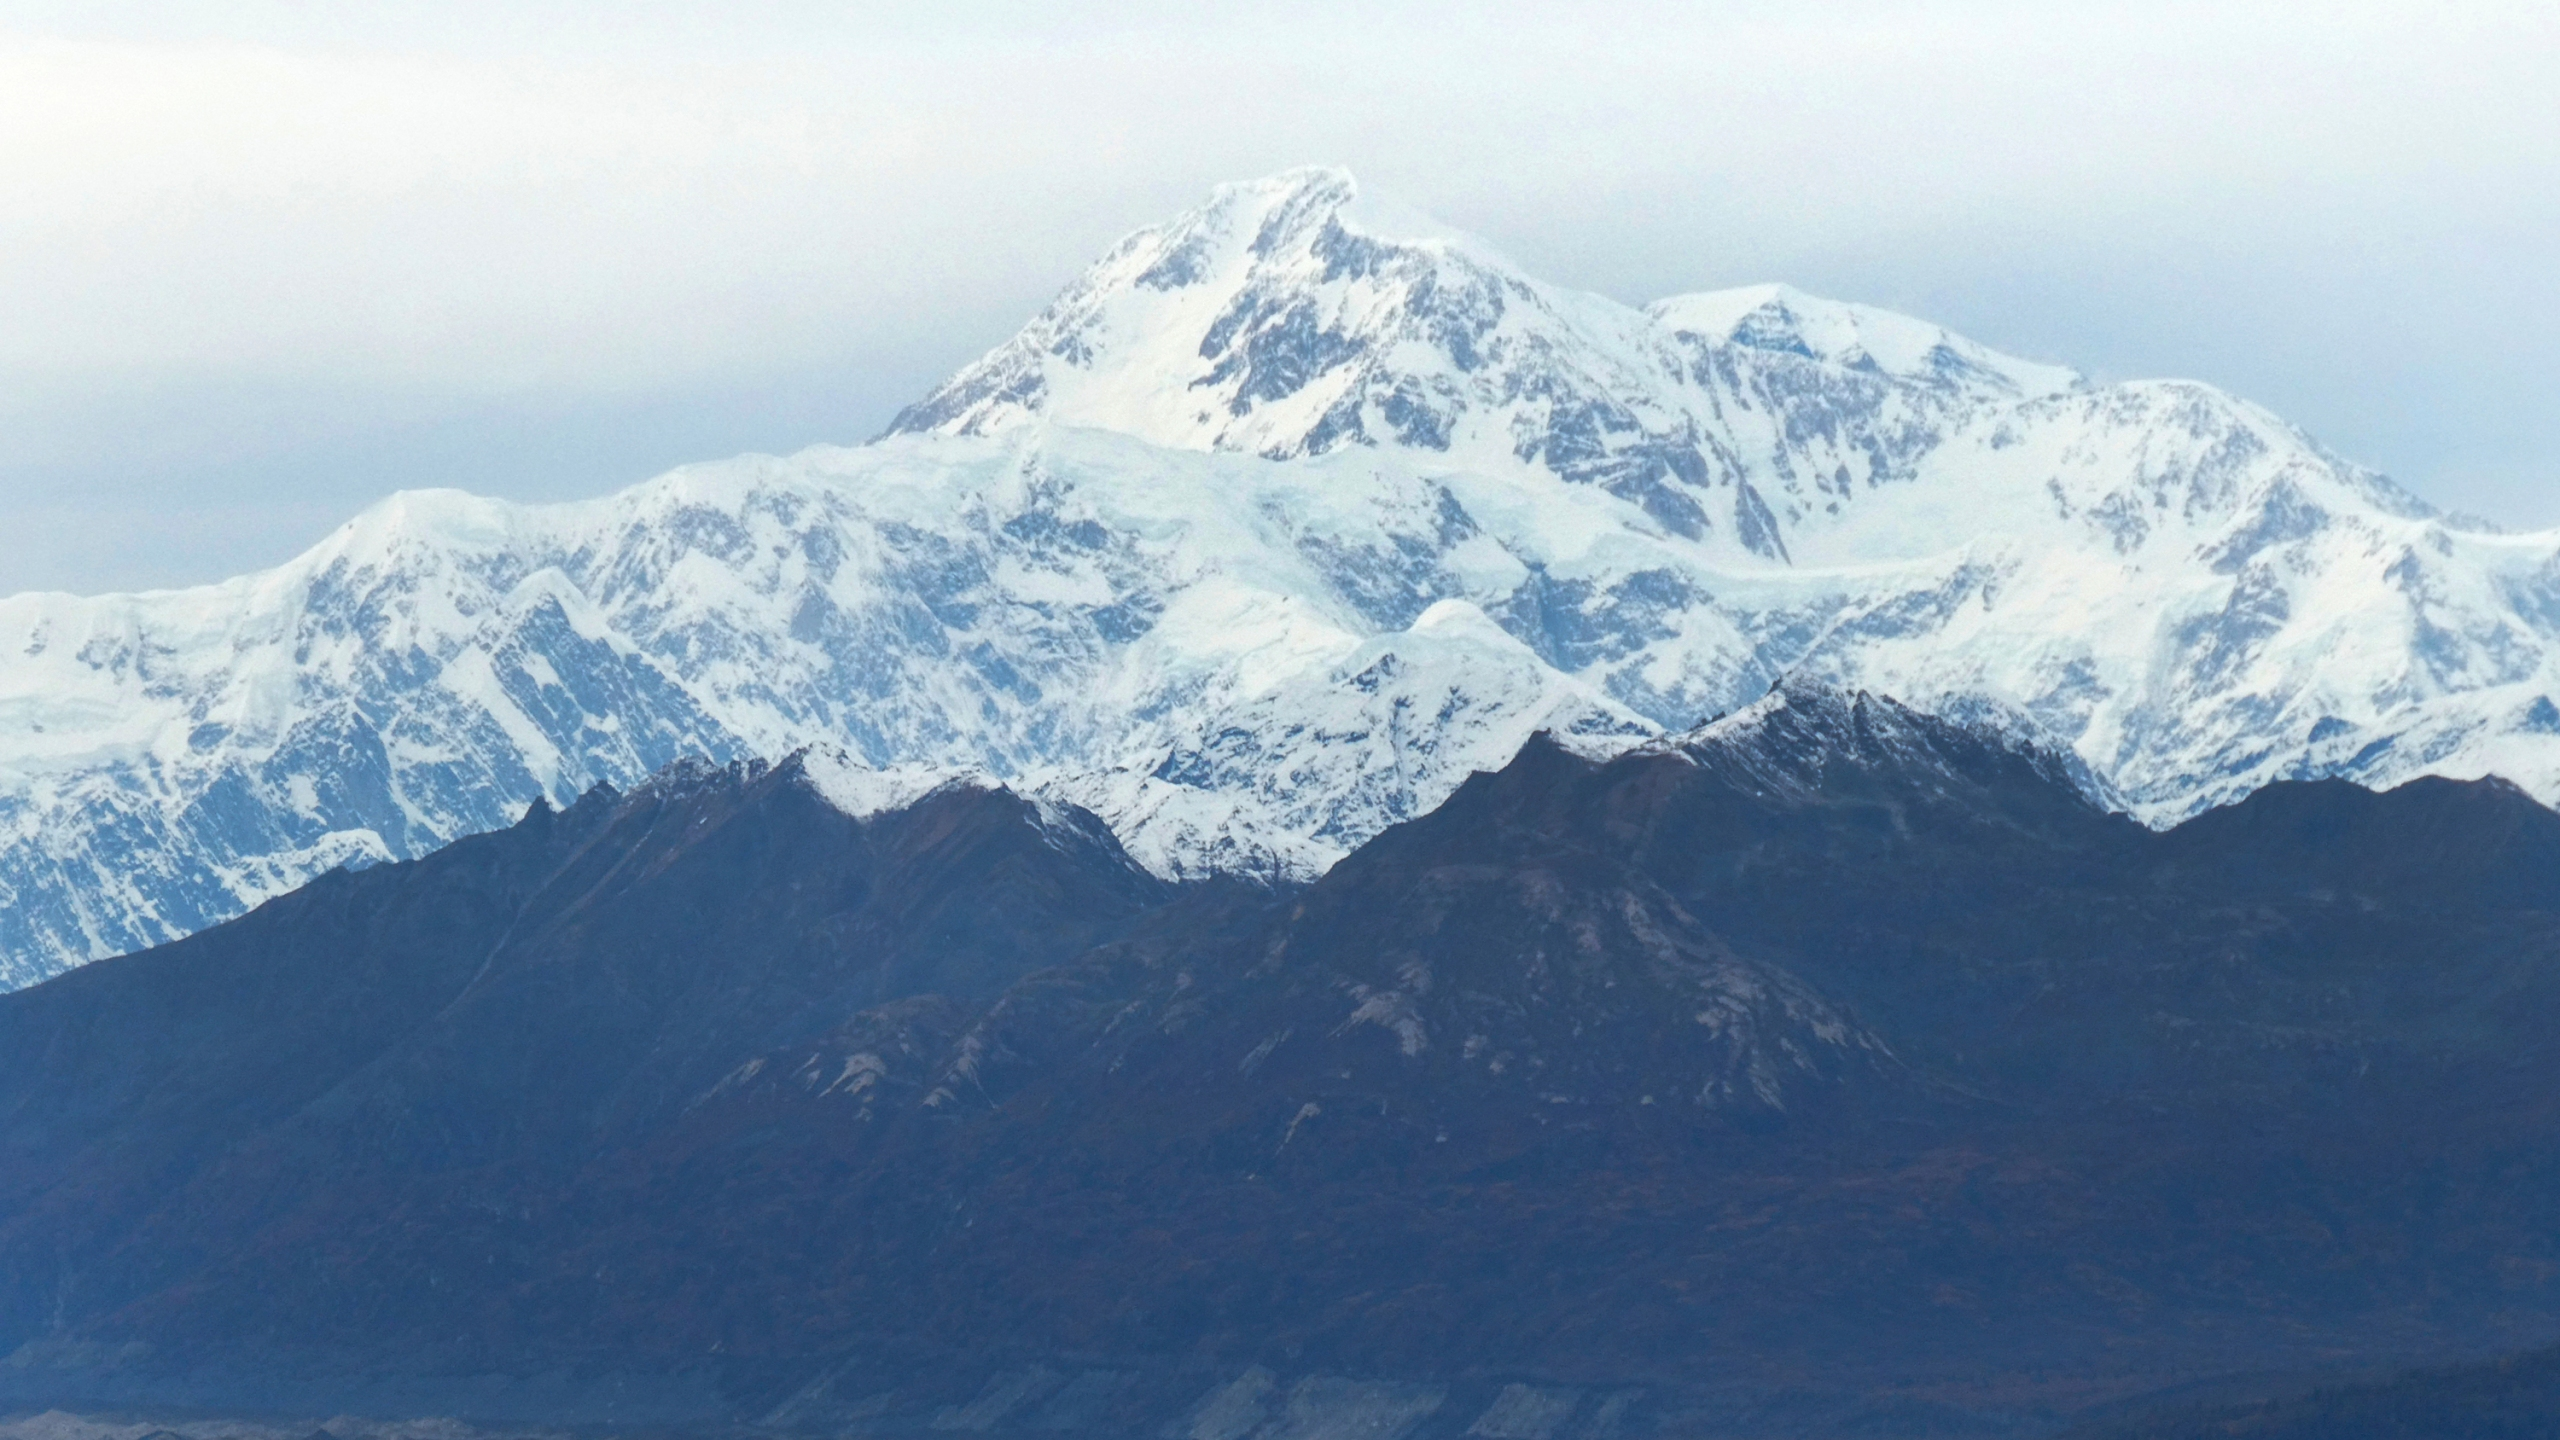 In this Oct. 1, 2017 photo, North America's tallest peak, Denali, is seen from a turnout in Denali State Park, Alaska. (AP Photo/Becky Bohrer)